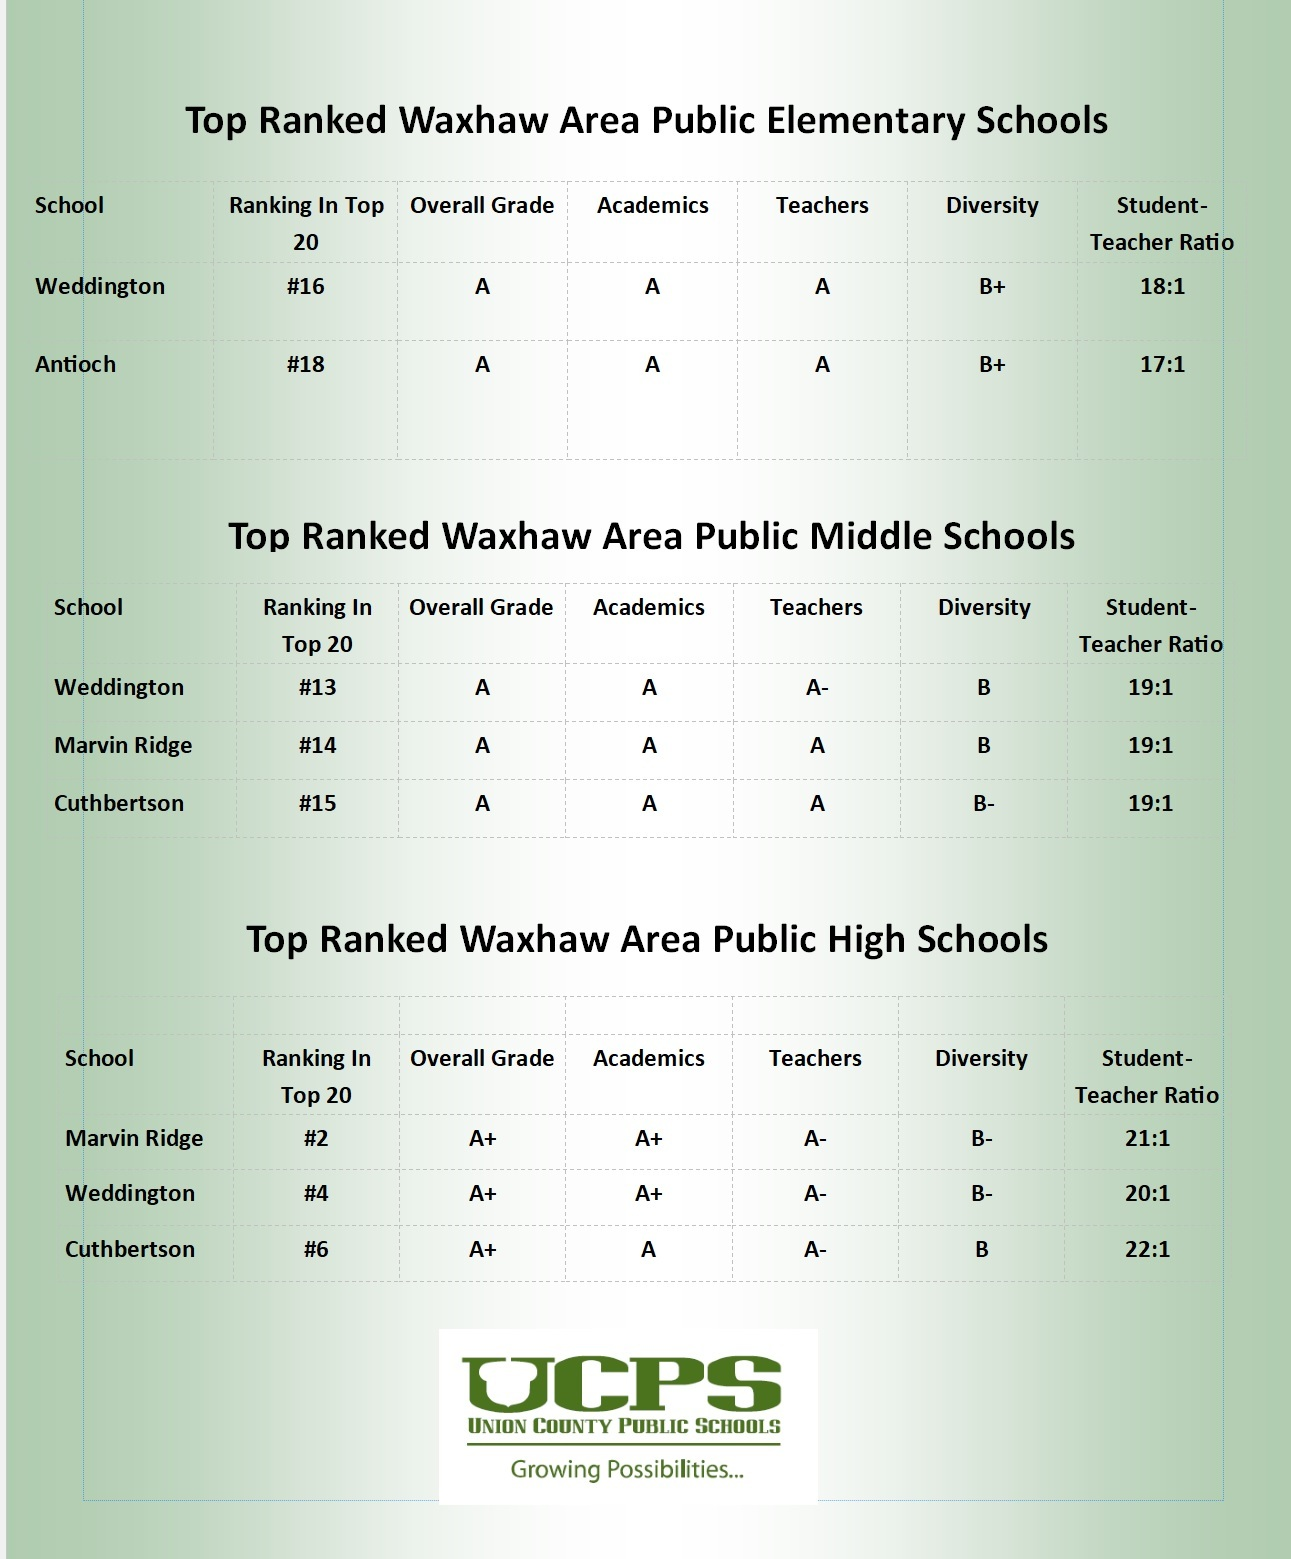 Top Ranked Waxhaw Area Schools